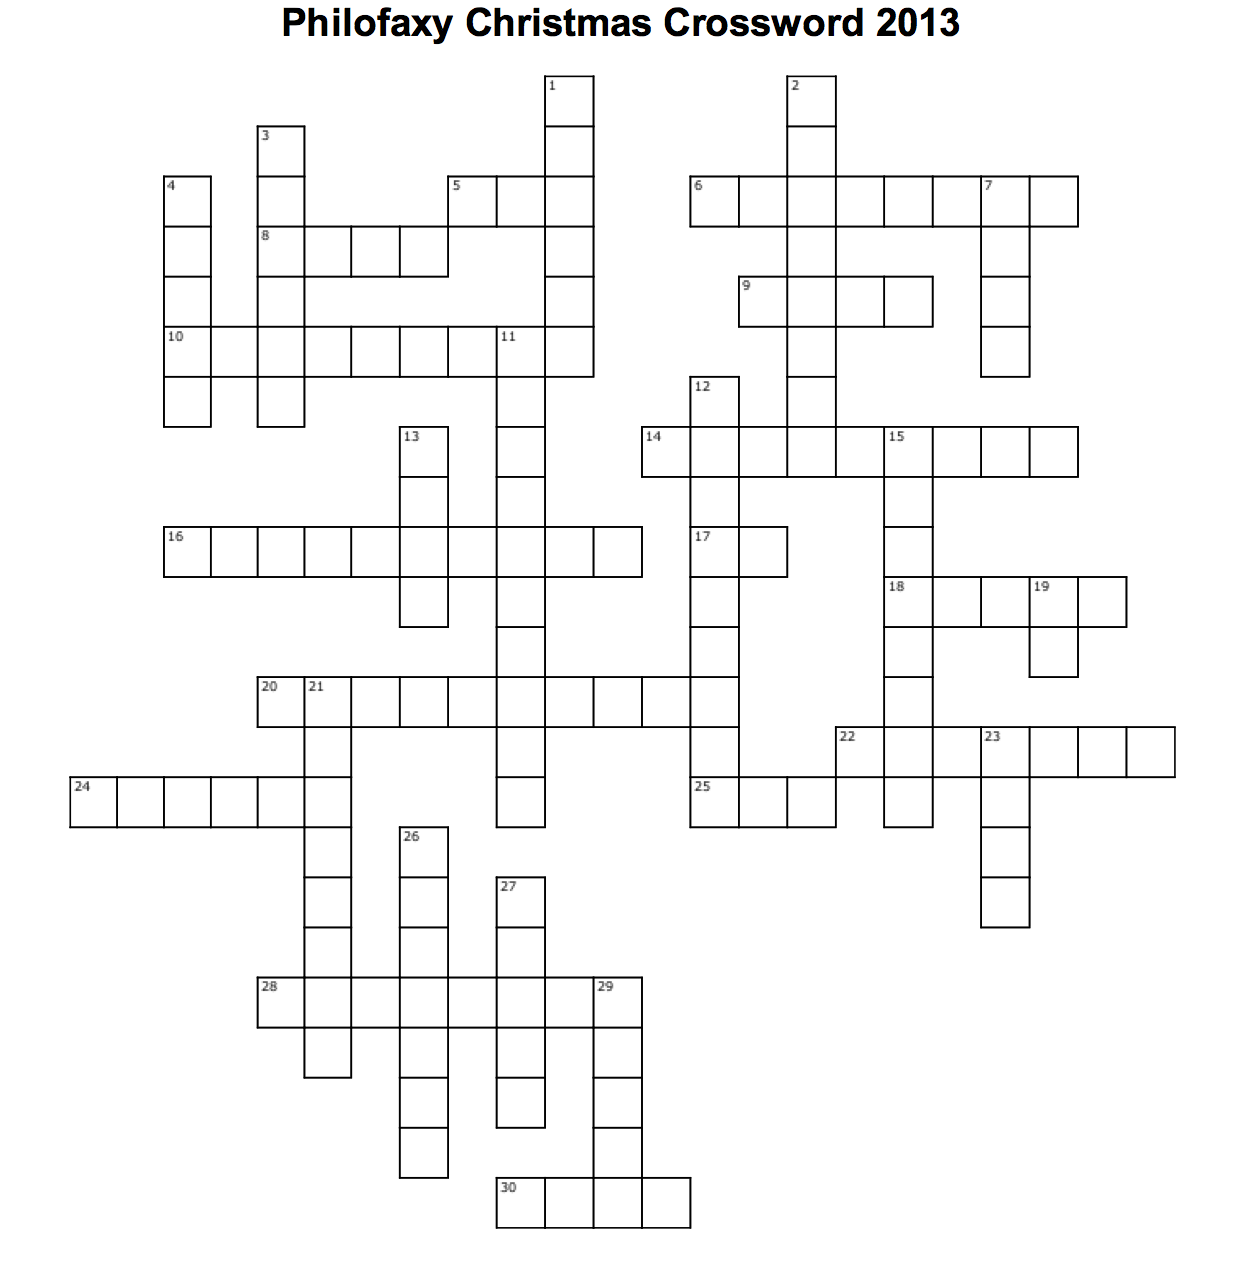 across - Christmas Crossword Answers